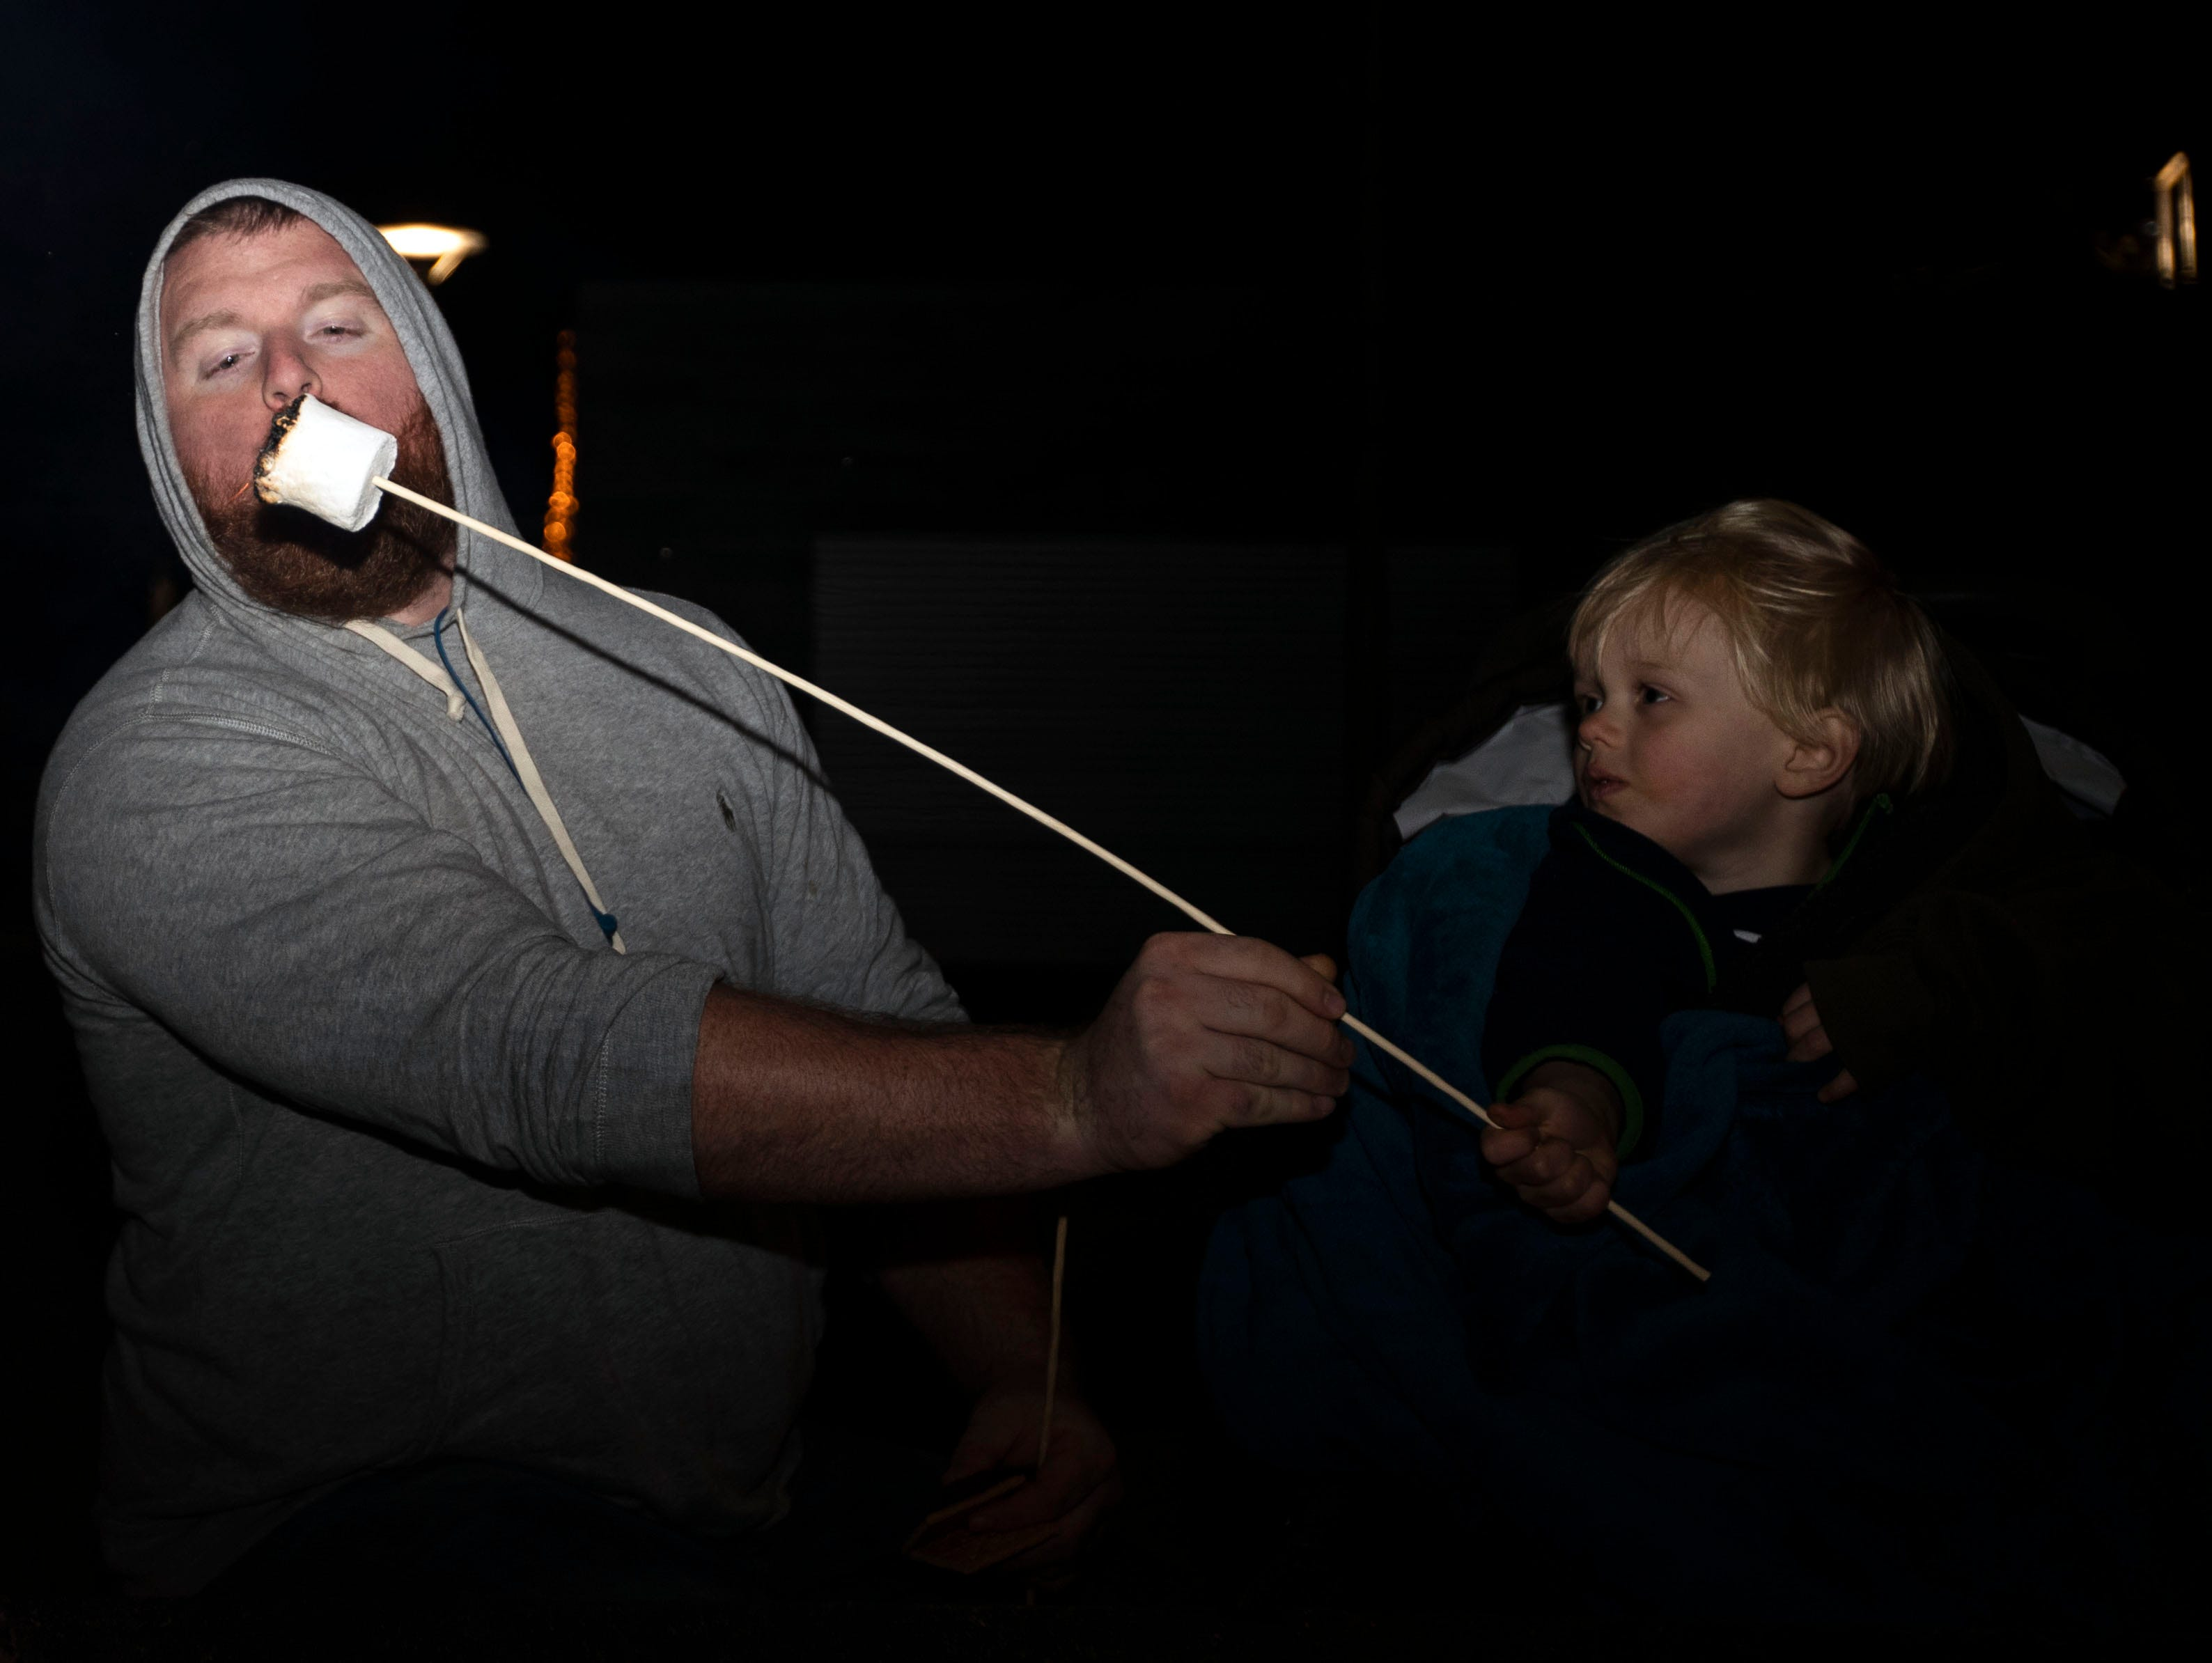 Cam and Tyler Pounders share a marshmallow at the Starry Nights, annual drive-through light display at Shelby Farms, features walking trails of lights and a drive-through display.